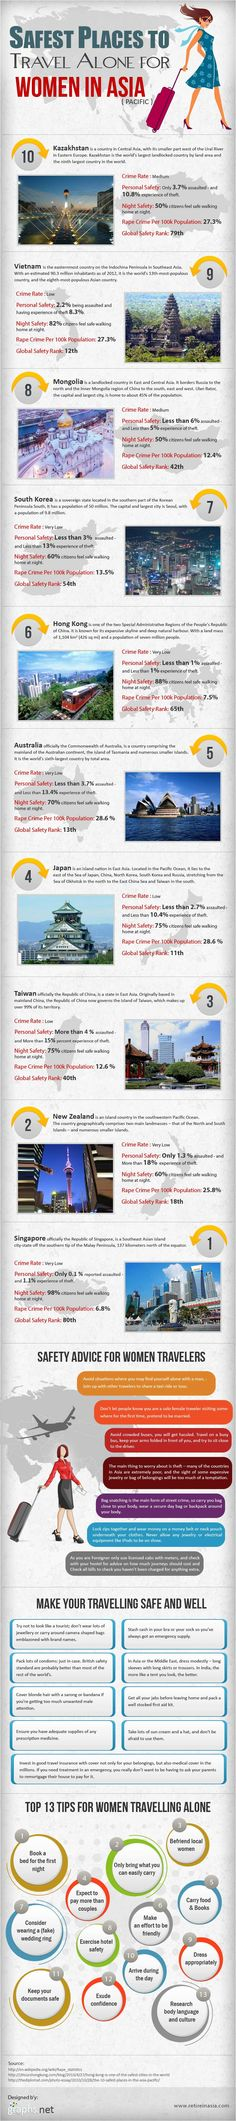 SAFEST PLACES TO TRAVEL ALONE FOR WOMEN IN ASIA [INFOGRAPHIC] #TRAVEL #WOMEN #INFOGRAPHIC